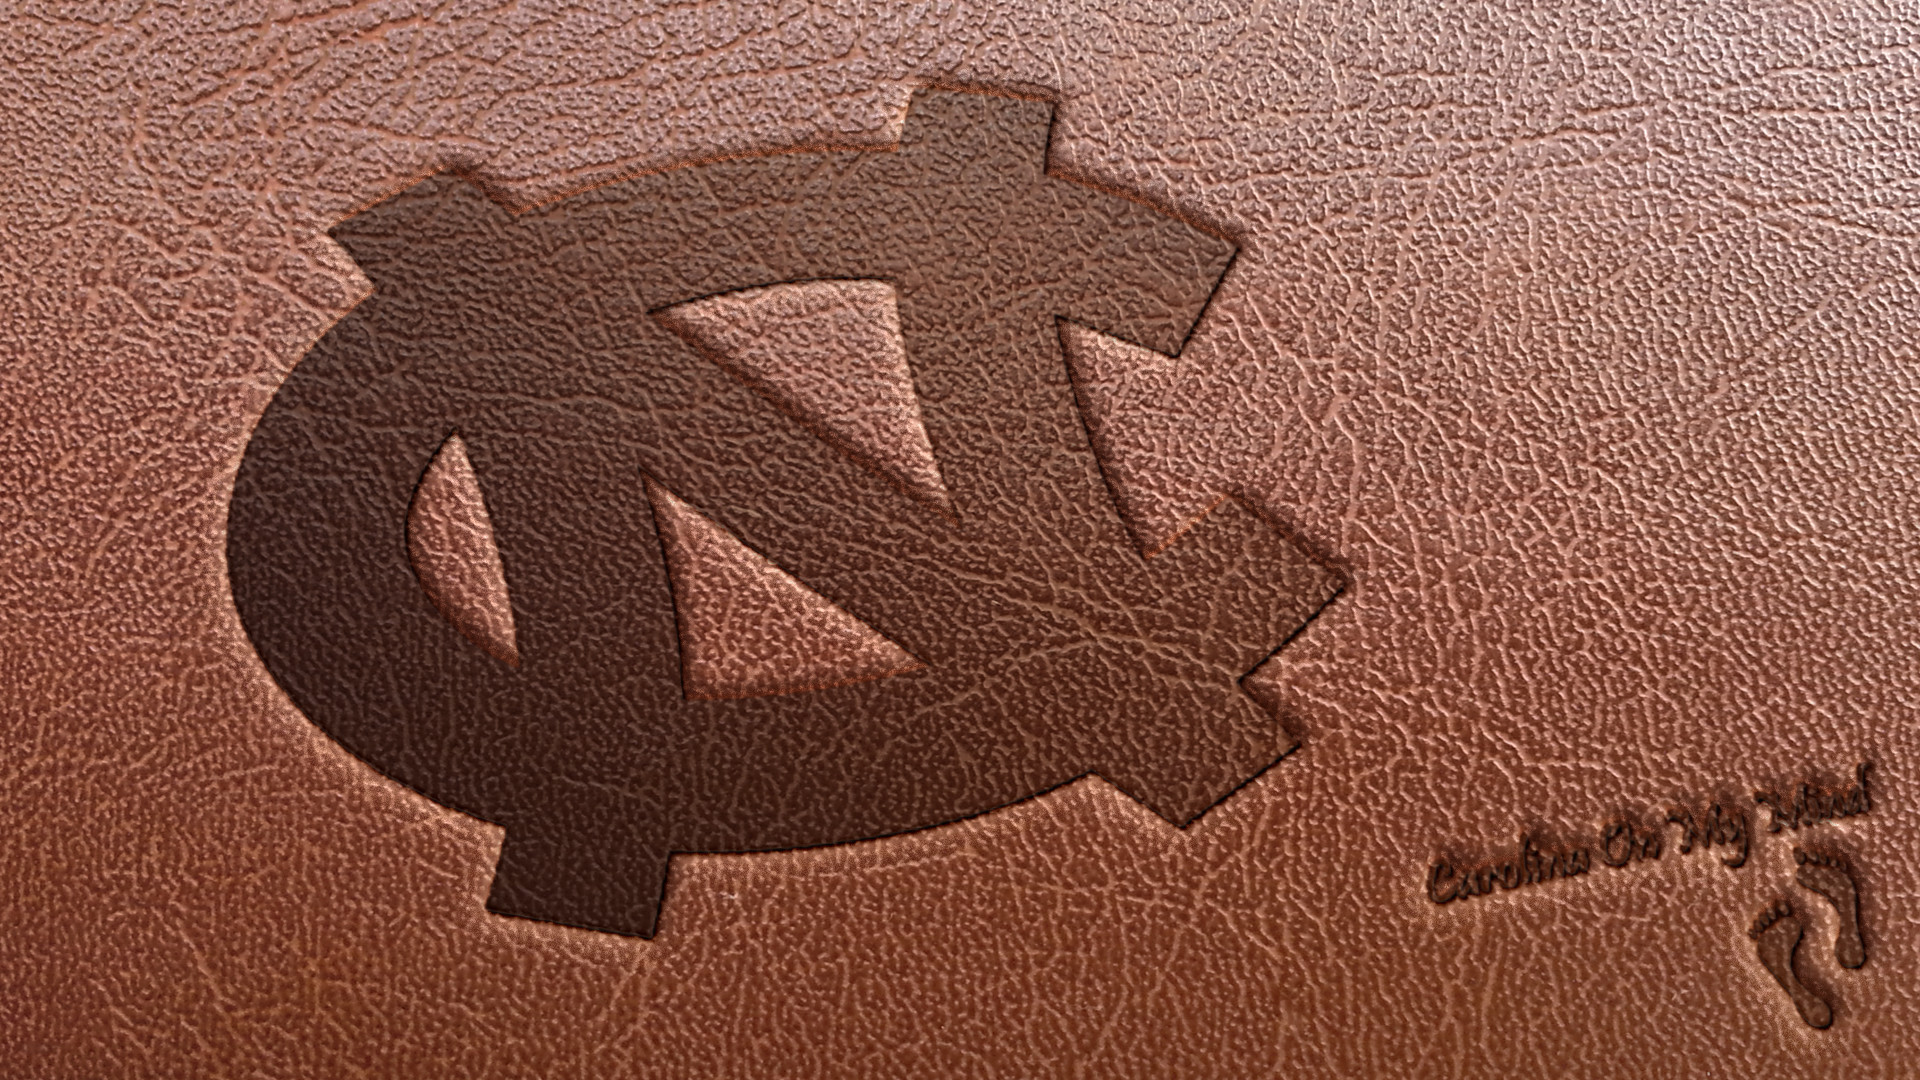 1920x1080 Leather Interlocking NC UNC Desktop Wallpaper 1920 x 1080